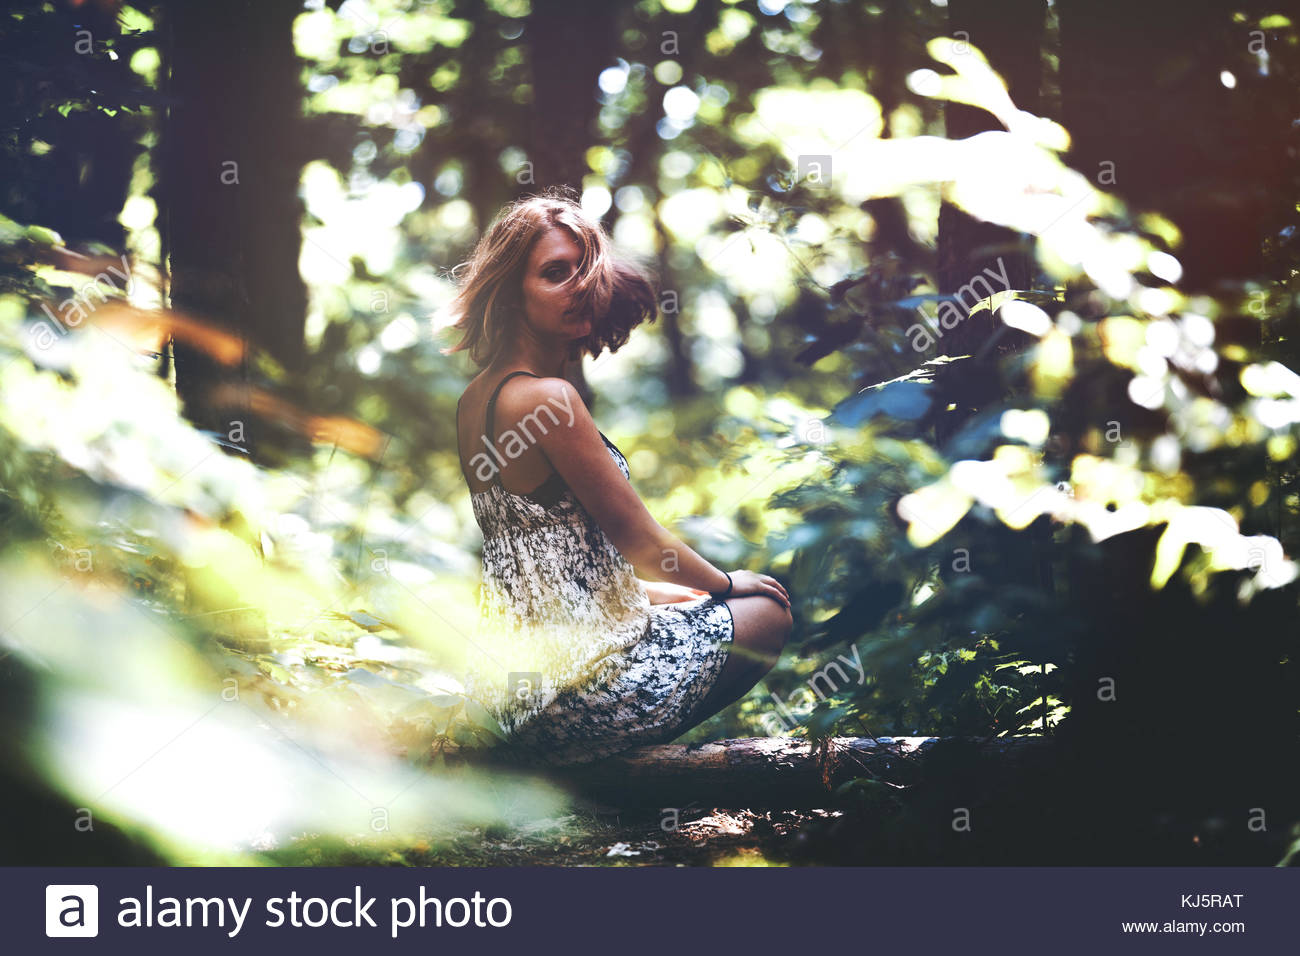 Young woman in forest - Stock Image